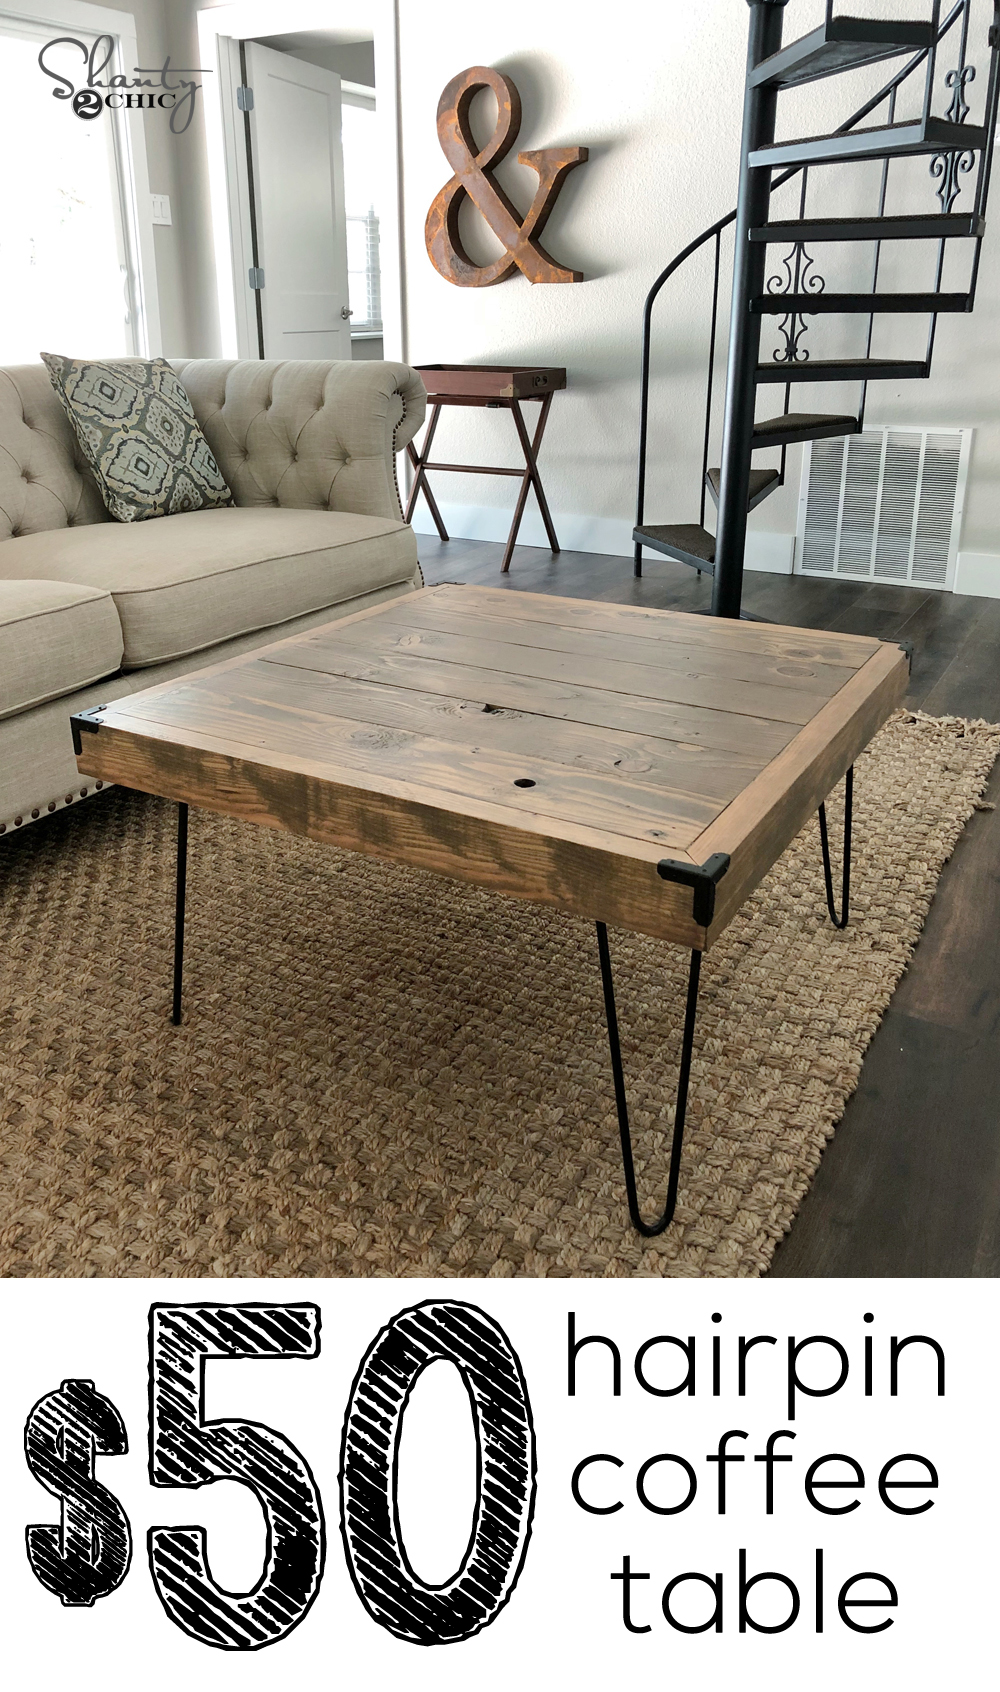 Diy 50 Square Hairpin Leg Coffee Table Shanty 2 Chic